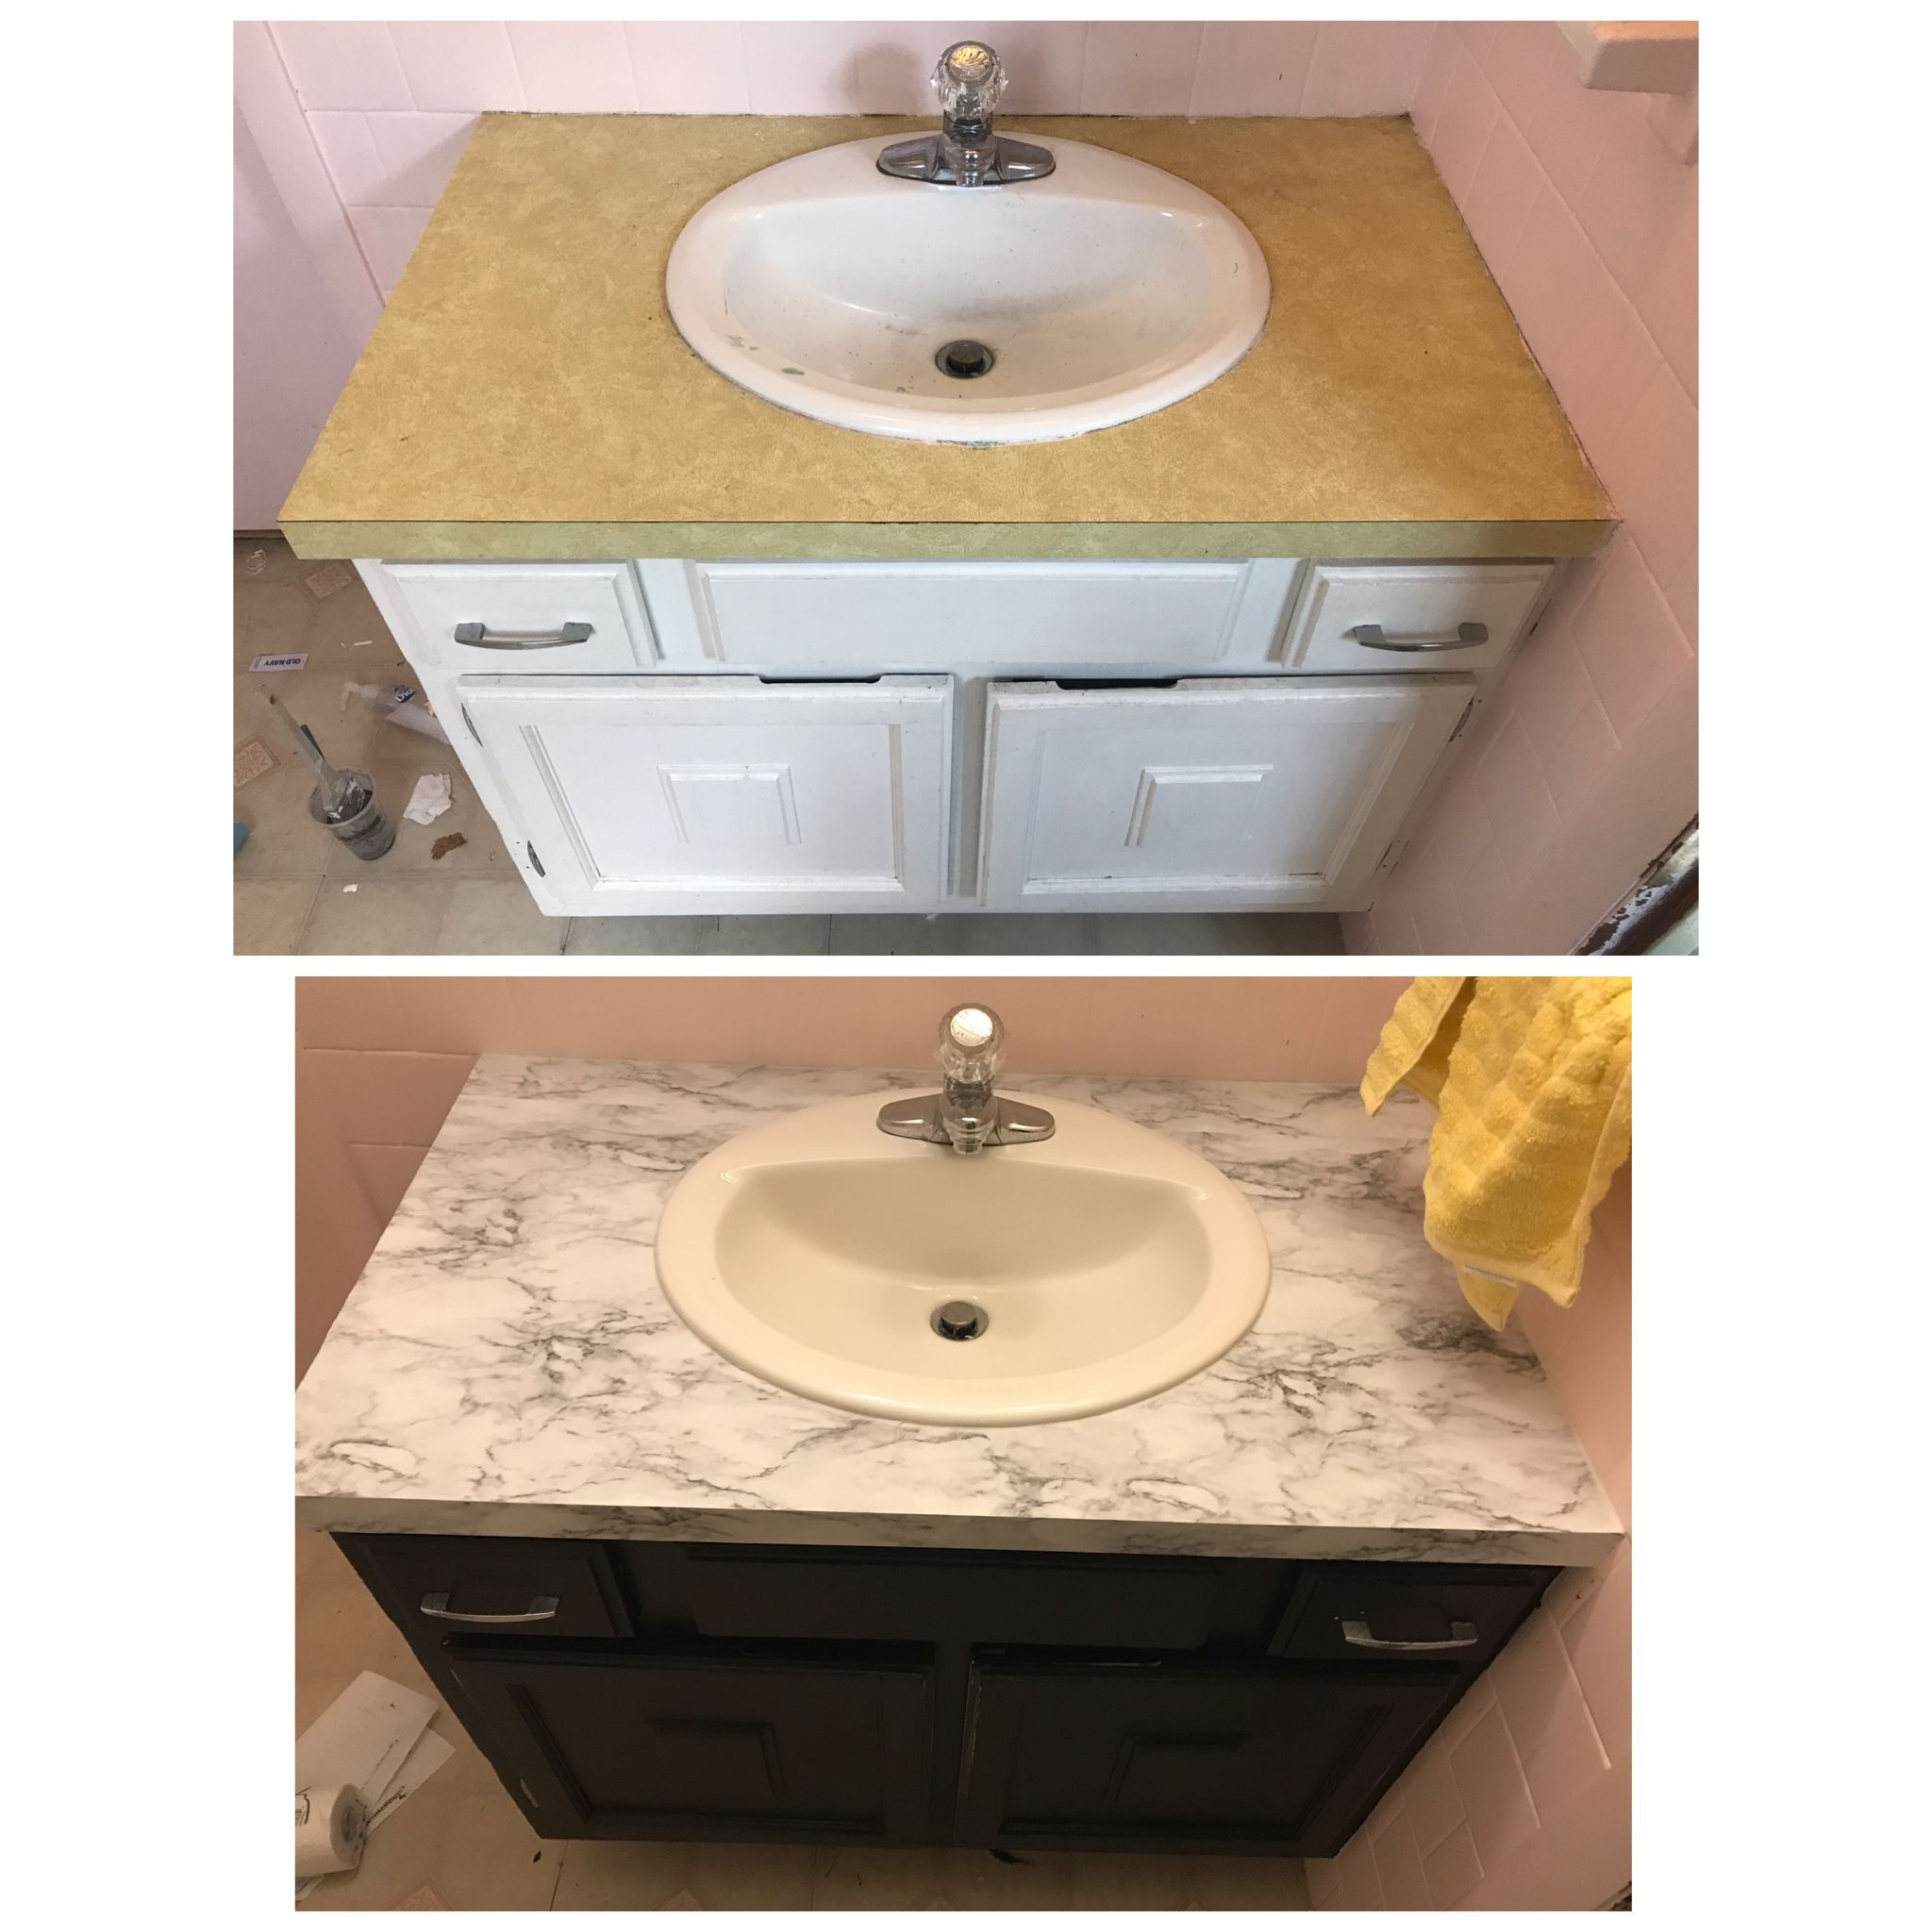 The Easiest Cheap Counter Top Fix Diy New Countertop With Contact Paper From Walmart And Black Paint Cheap Countertops Countertops Inexpensive Countertops